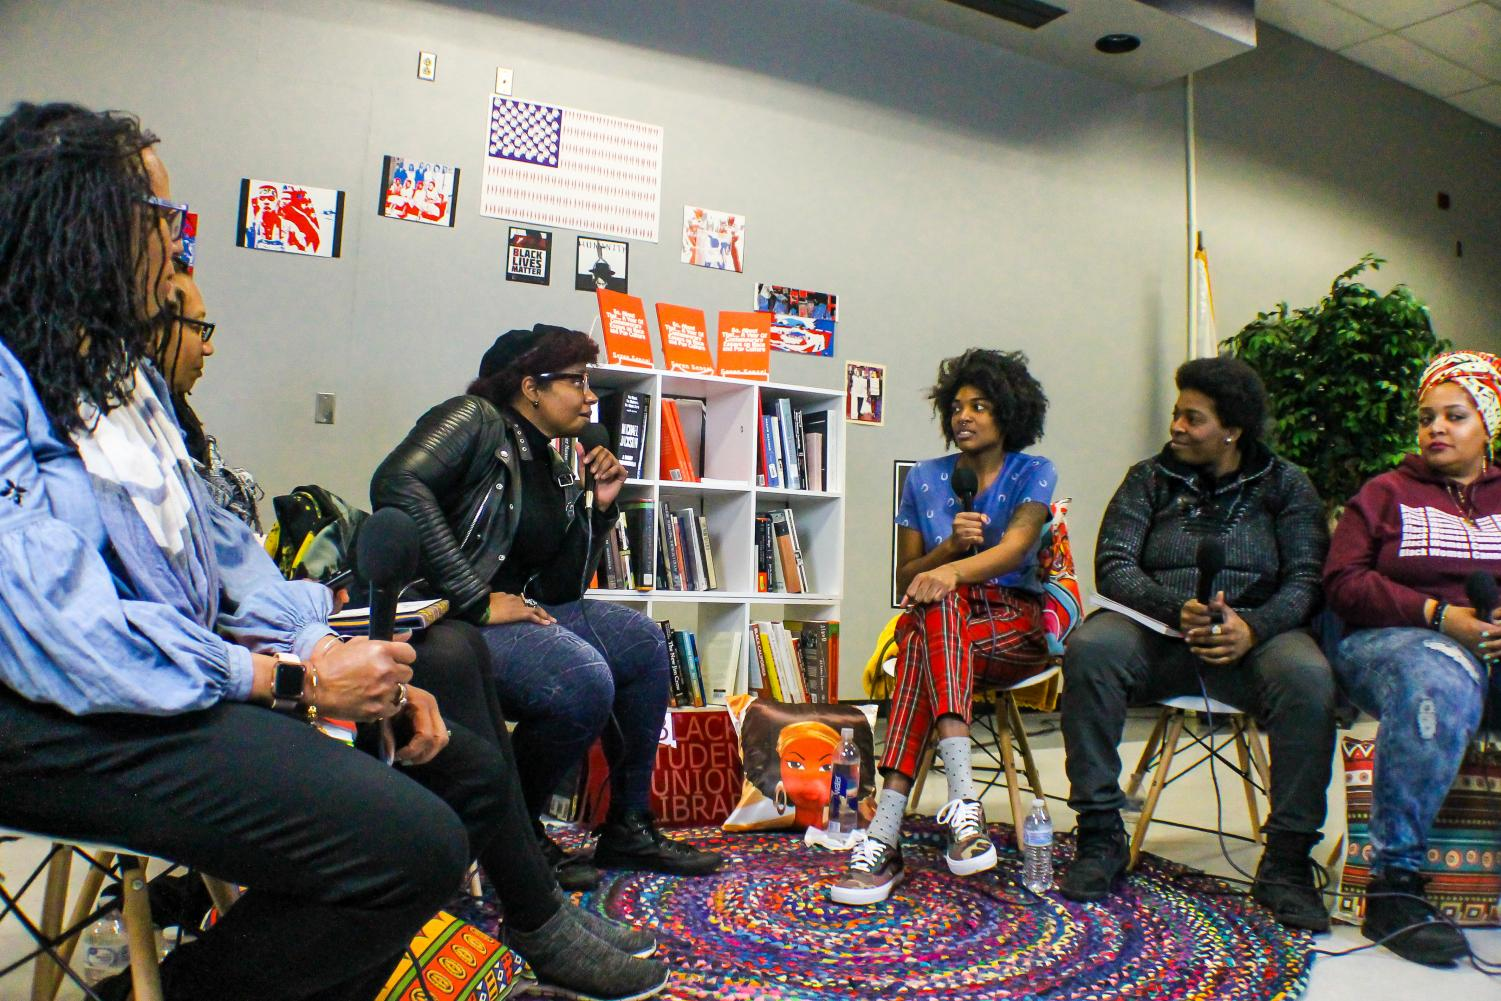 Sensei Ashitemasu, author of 'So, About That... A Year Of Contemporary Essays on Race and Pop Culture', swaps ideas with the Black Student Union during a live podcast on Feb. 28 in the Student Union Multi-Purpose Room.